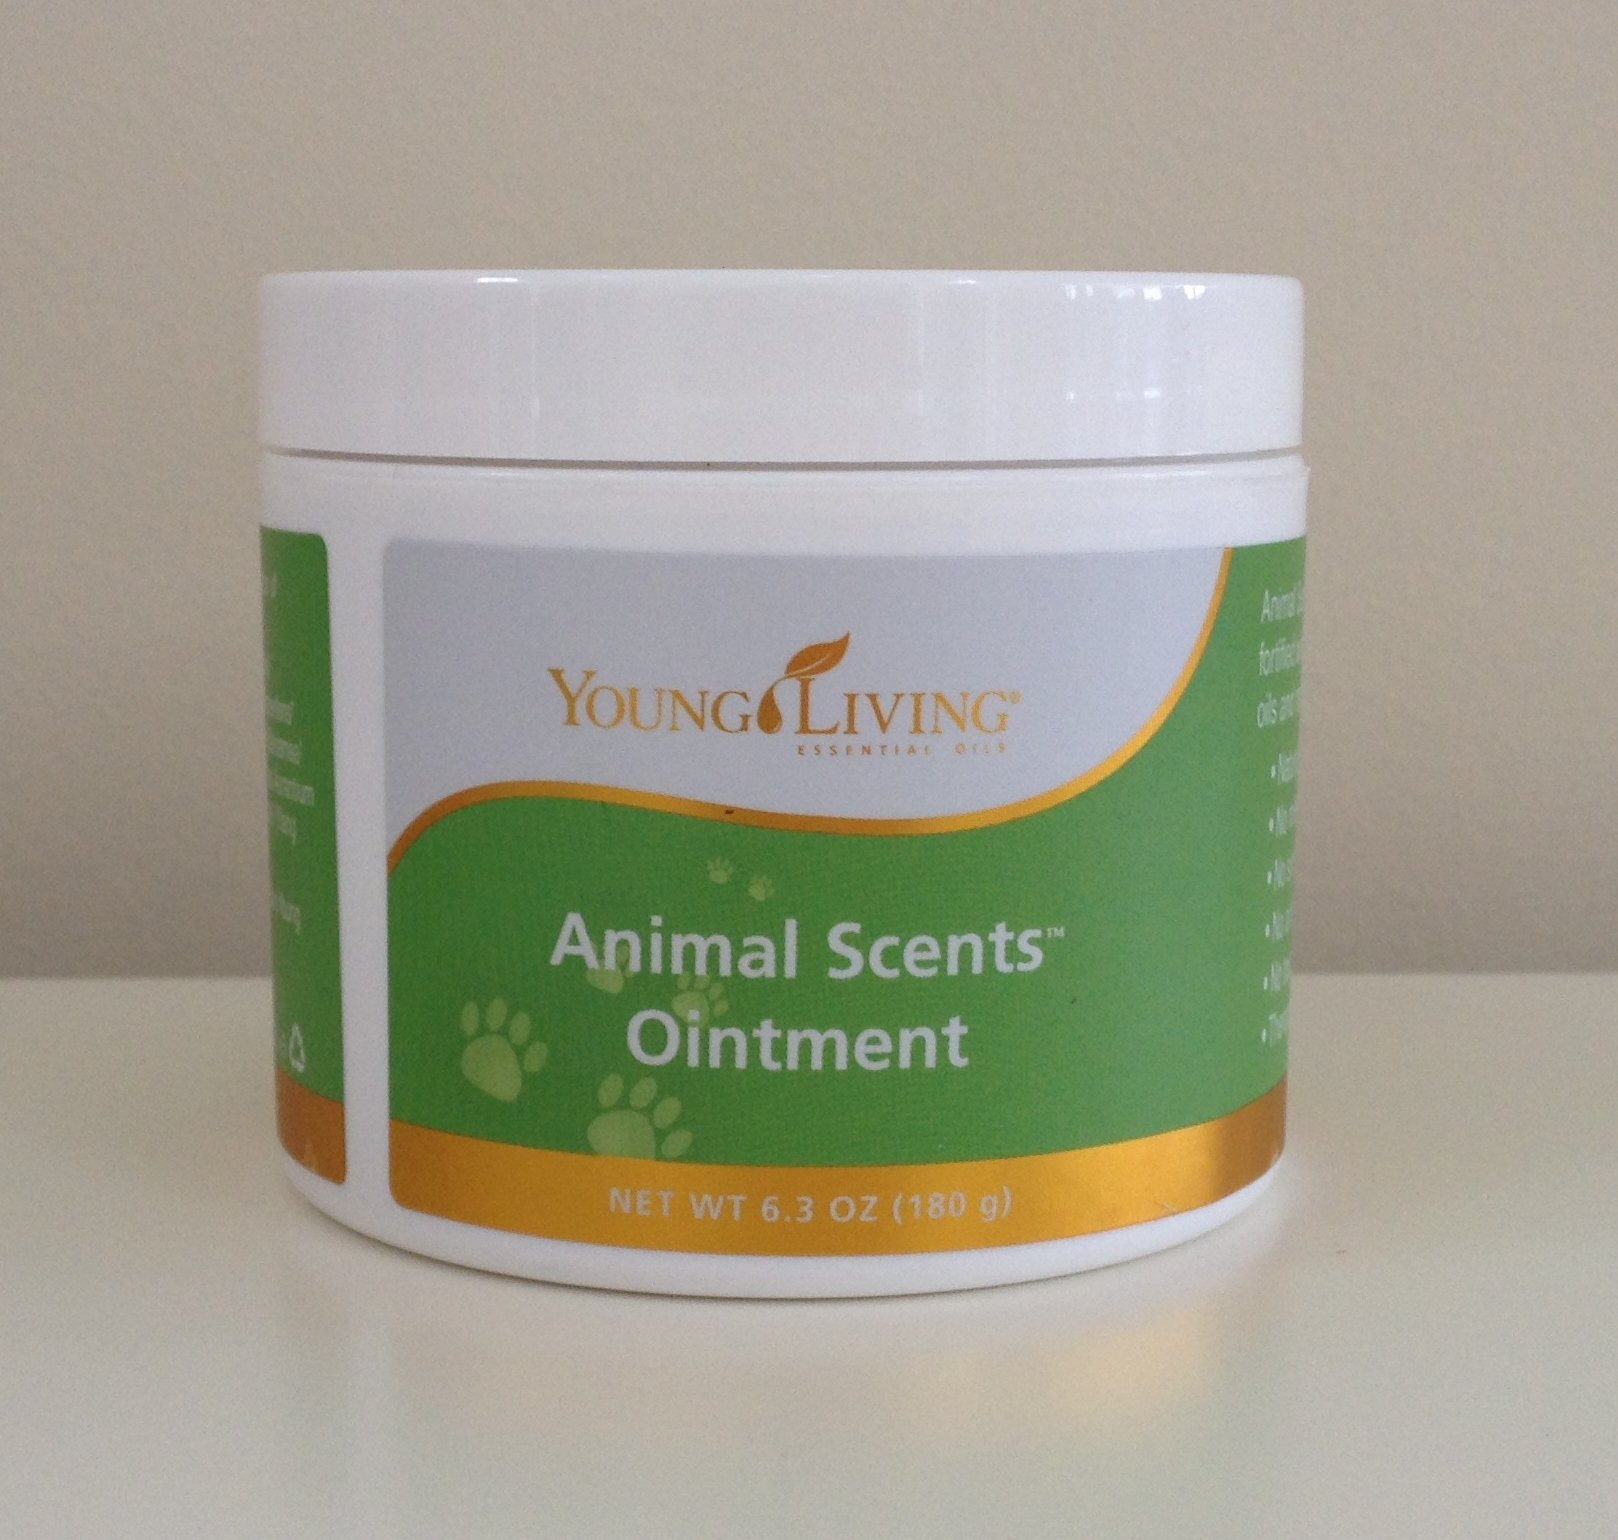 Animal Scents Pet Skin Ointment by Young Living Essentials - 6.3 oz. by Young Living (Image #1)